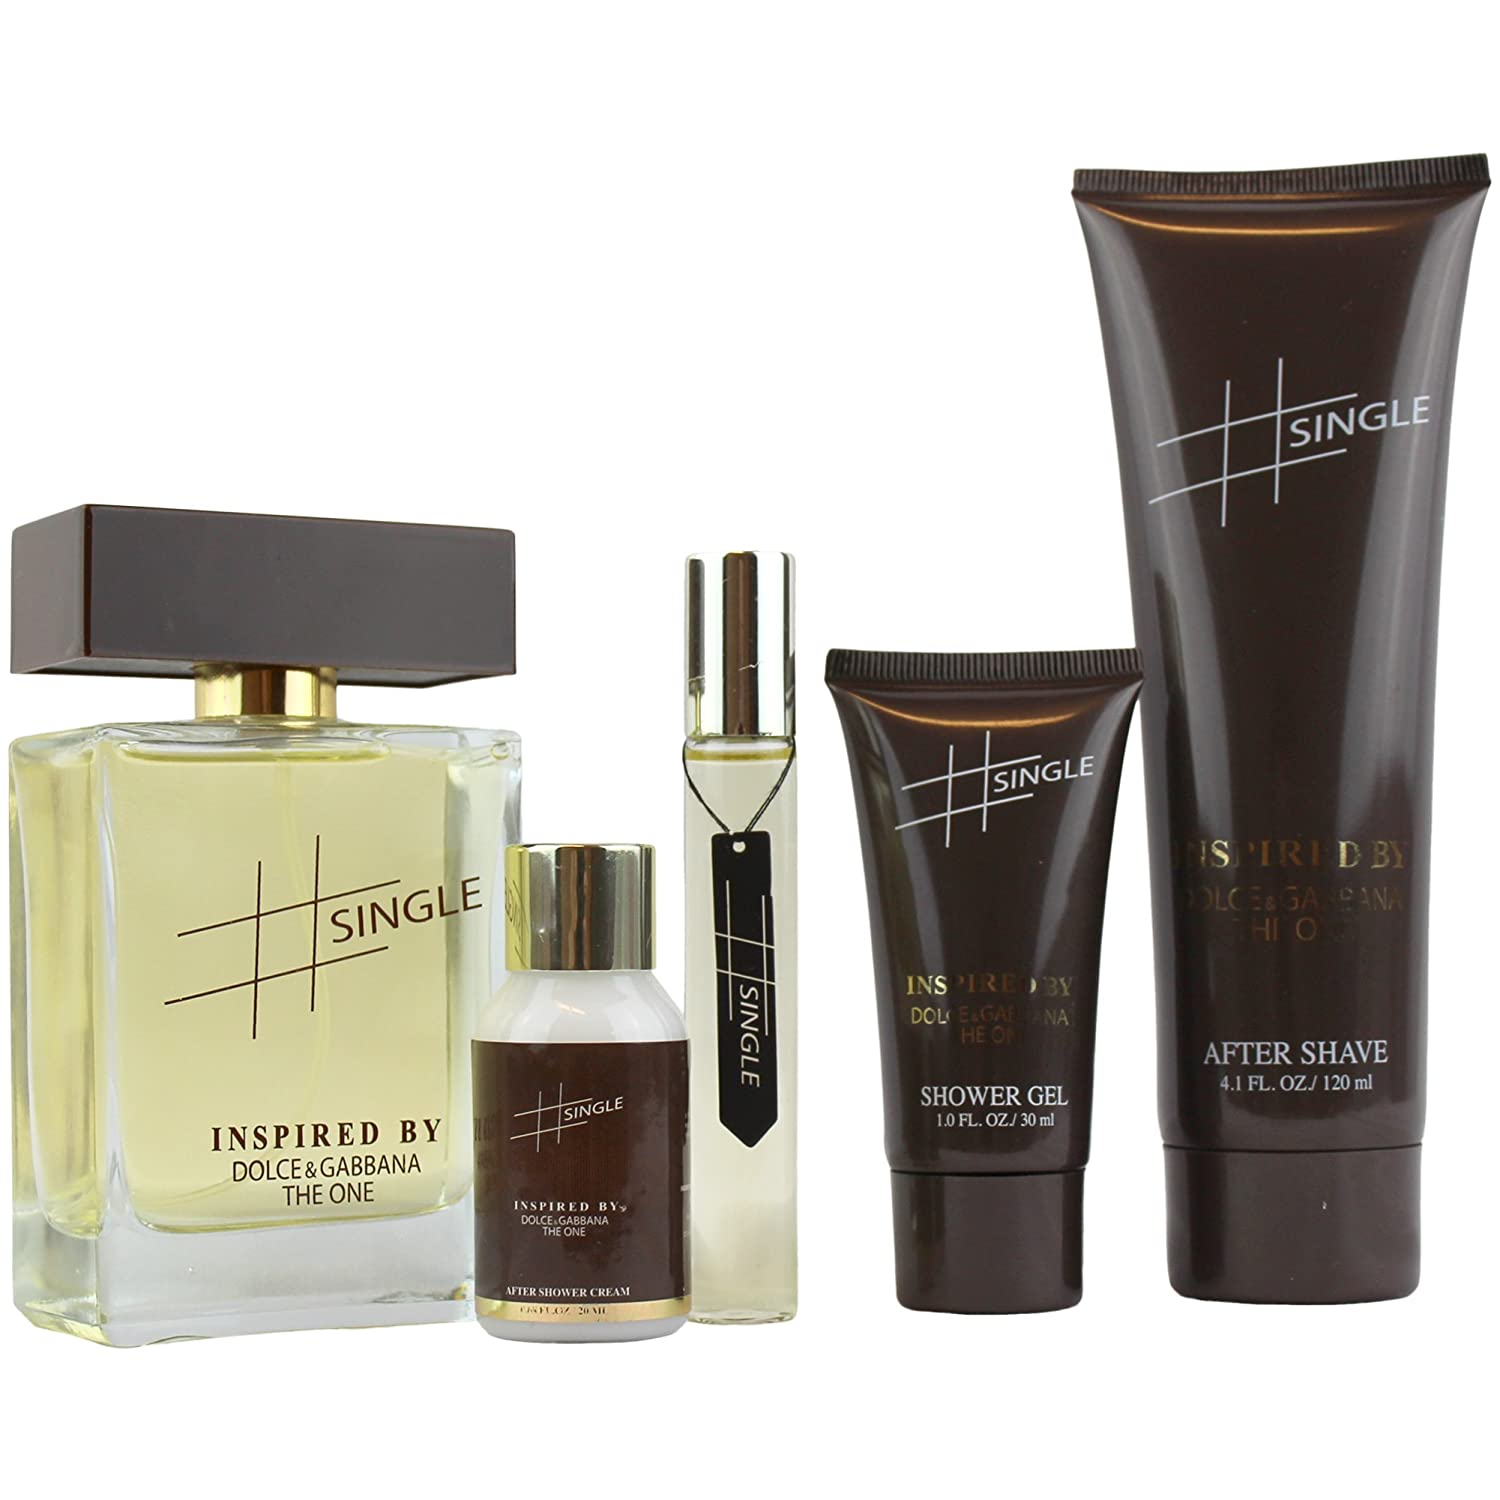 9a603ded87b57e Amazon.com     Single 5Pc Fragrance Gift Set, Includes. Perfume, After  Shave, Shower Gel, After Shower Cream and Roller Perfume Inspired By The One    Beauty